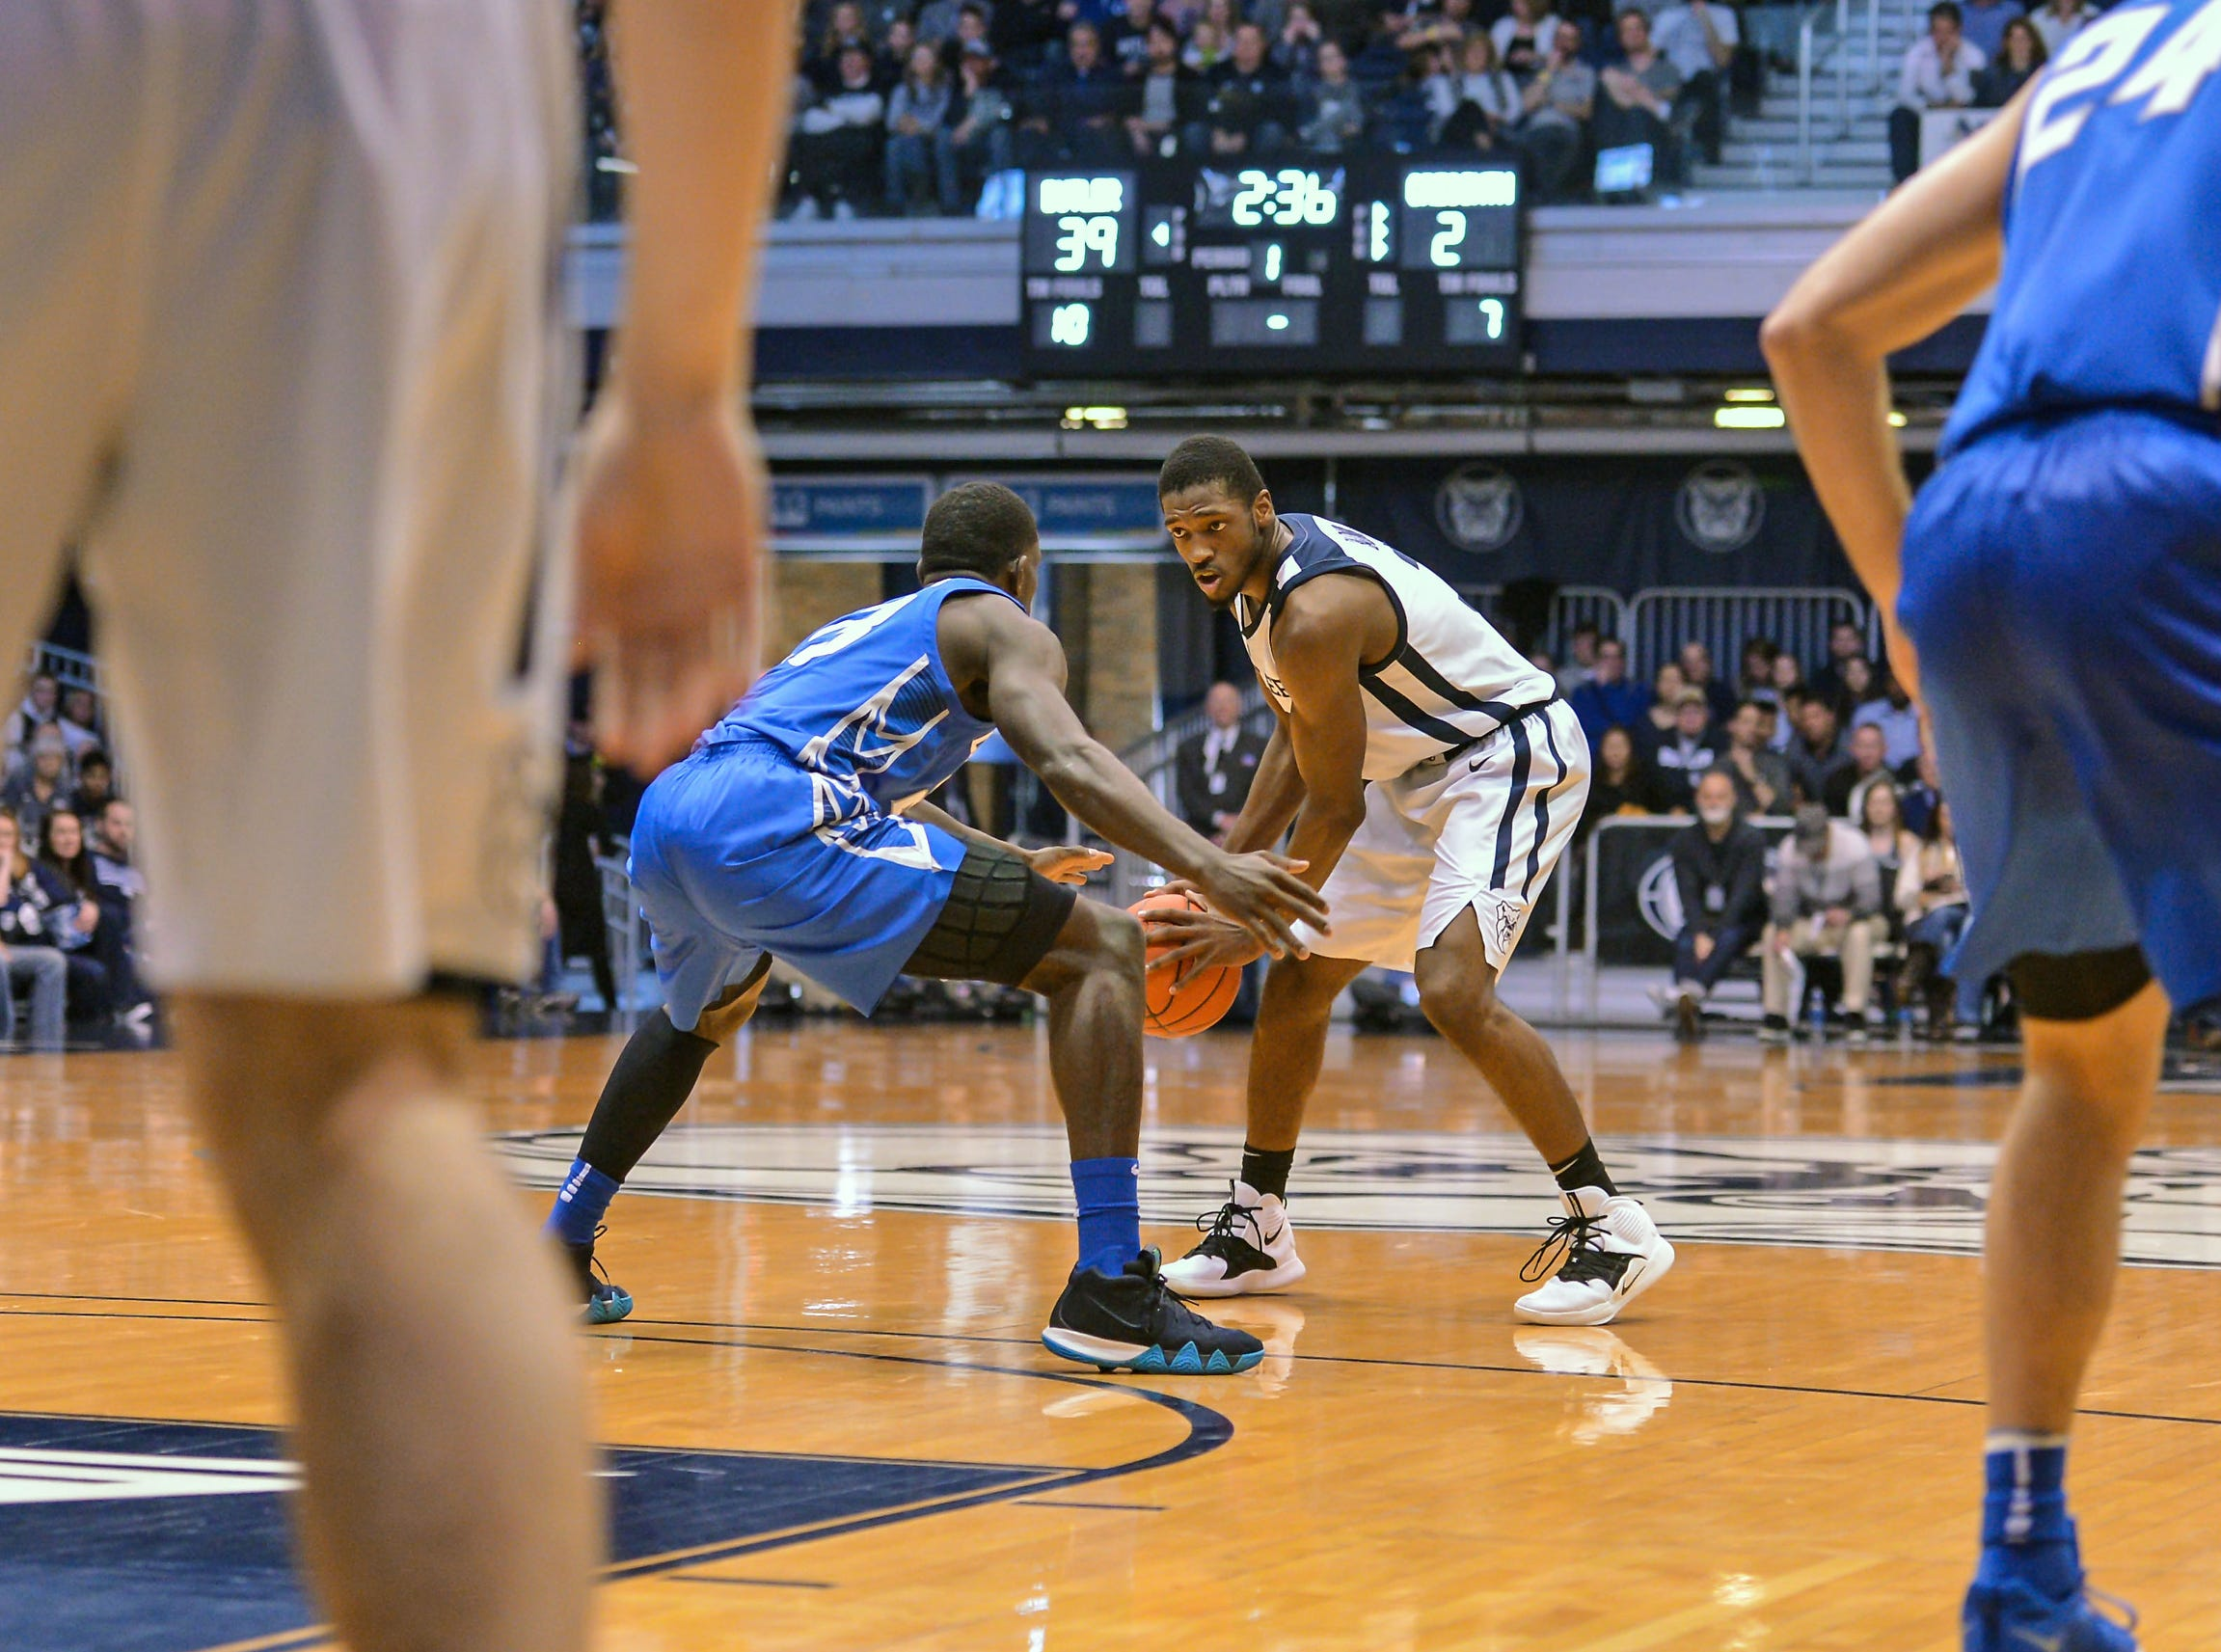 Butler Bulldogs guard Kamar Baldwin (3) runs the floor against the Creighton Bluejays during the first half of game action between Butler University and Creighton University, at Hinkle Fieldhouse in Indianapolis, Indiana on Saturday, Jan. 5, 2019.